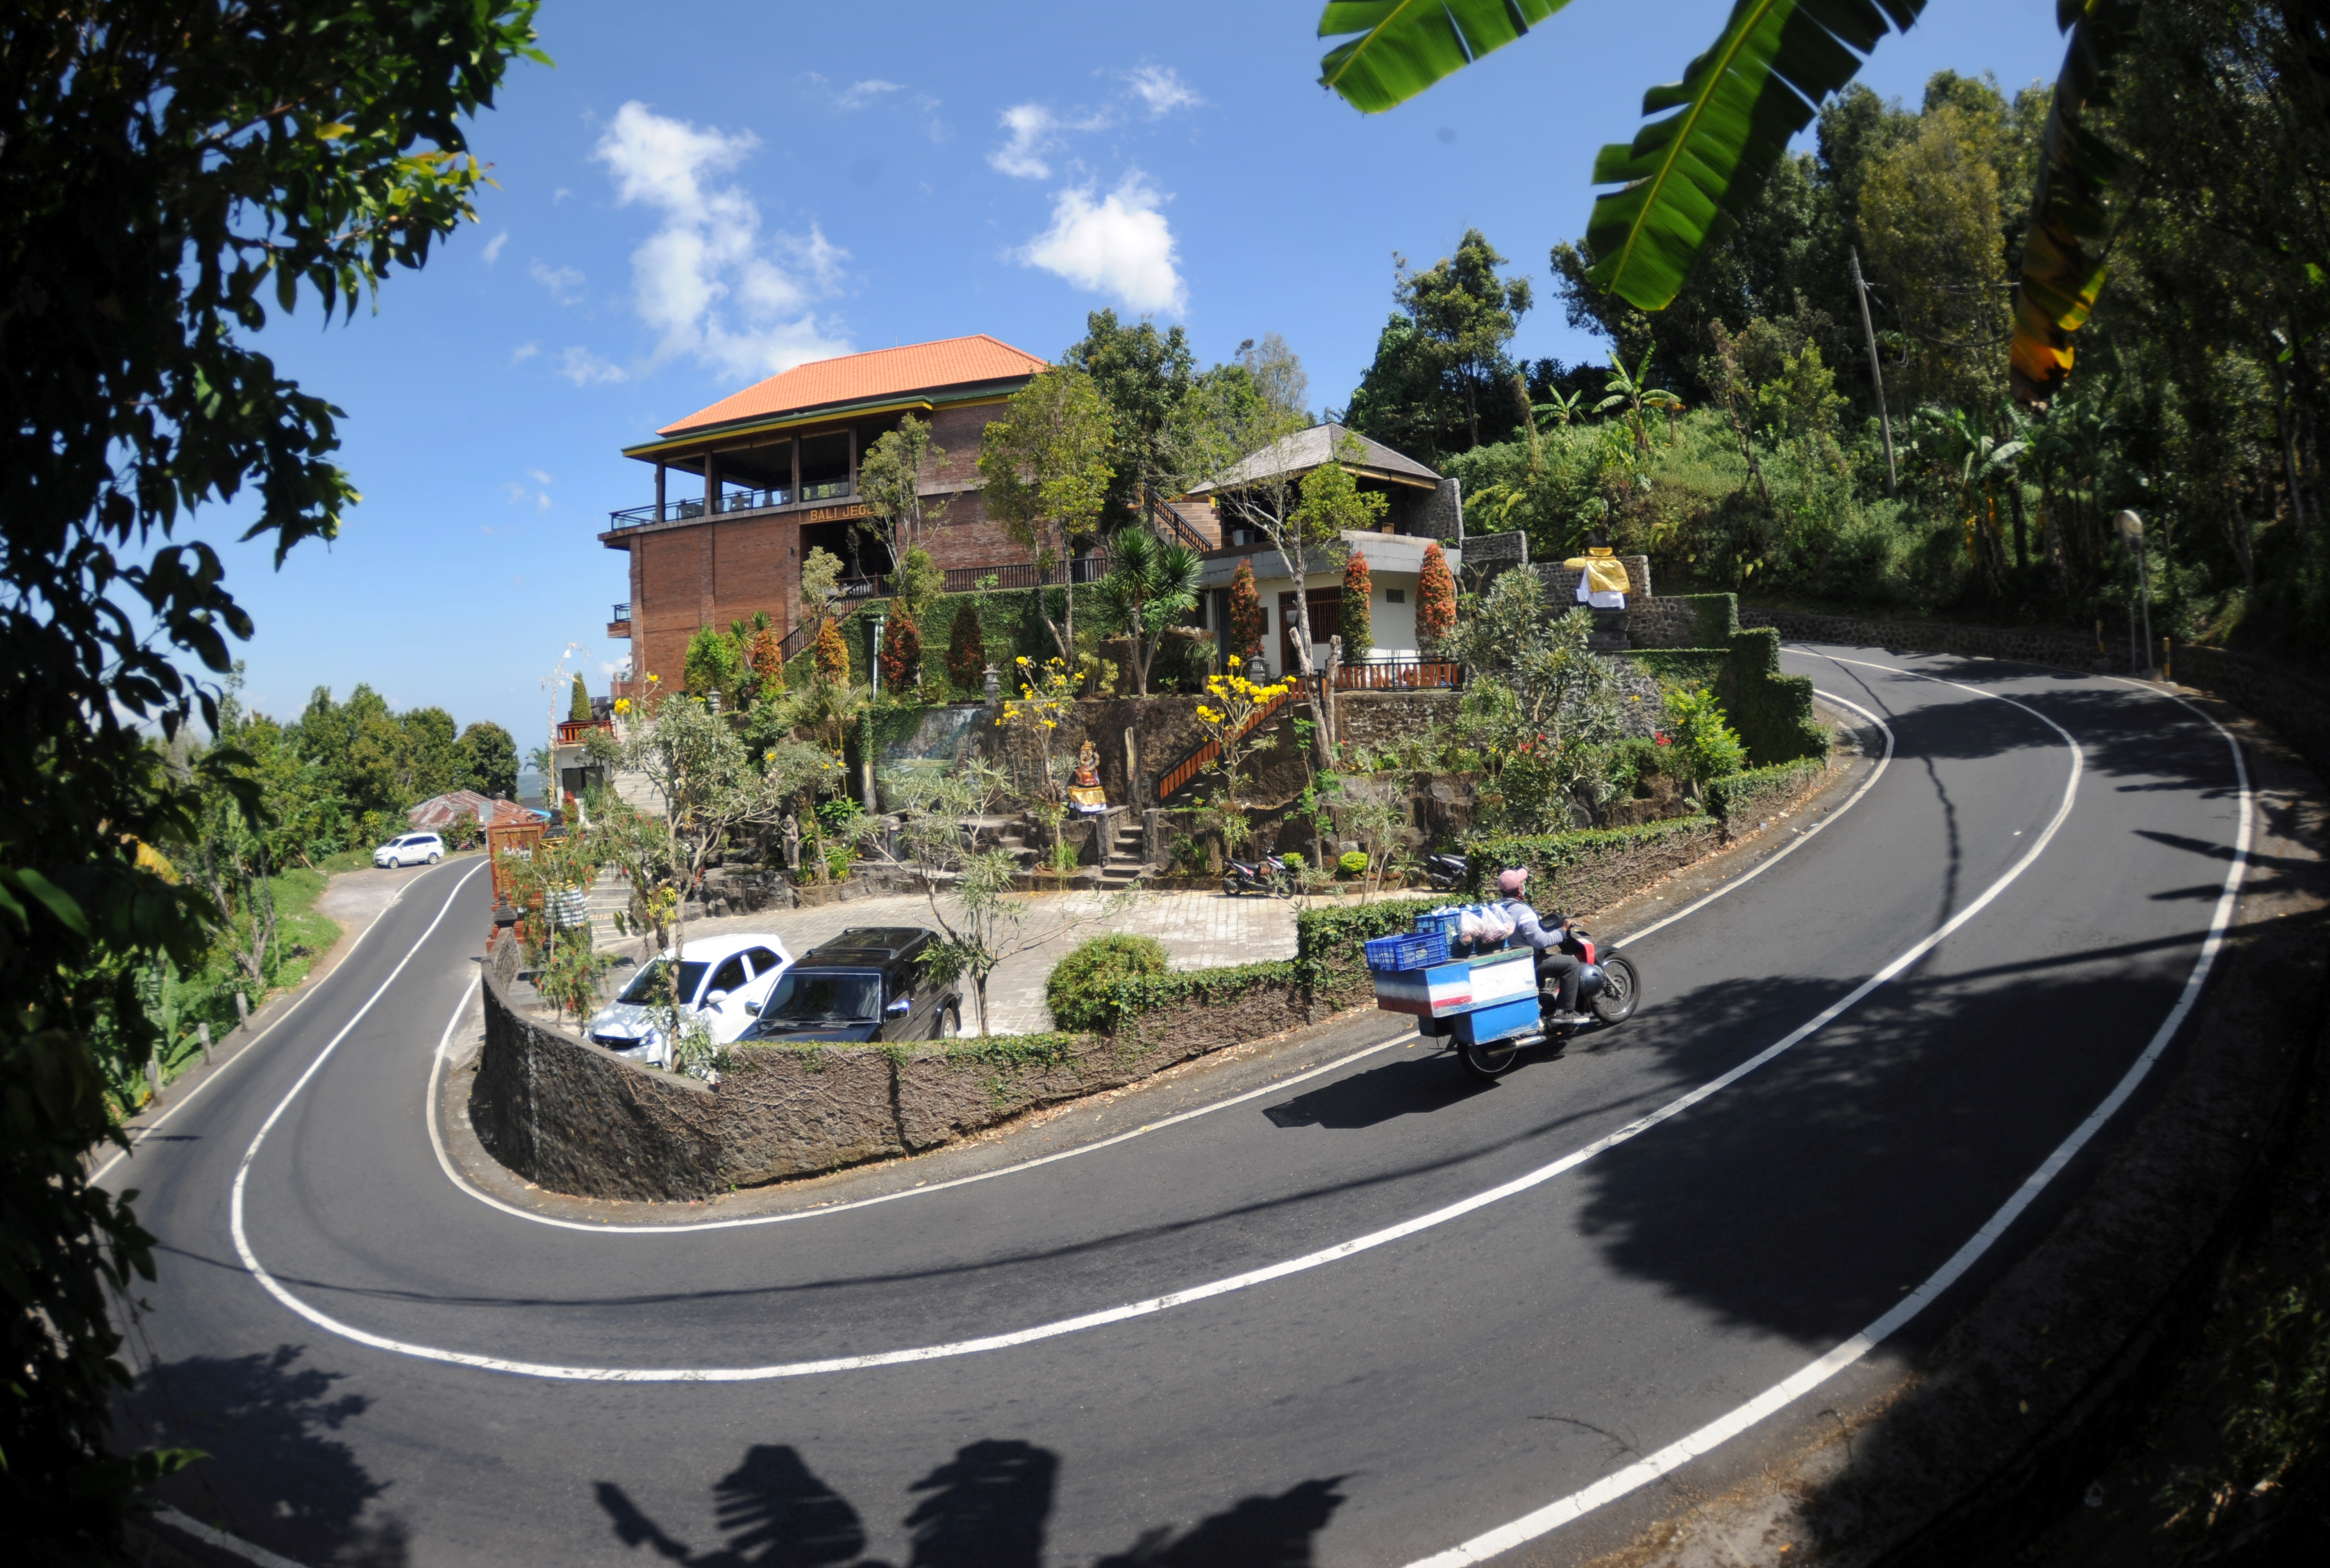 A motorist commutes past a villa in Bali's Munduk village, which has seen a downturn in tourists due to ongoing COVID-19 travel restrictions (PHOTO: AFP / SONNY TUMBELAKA)